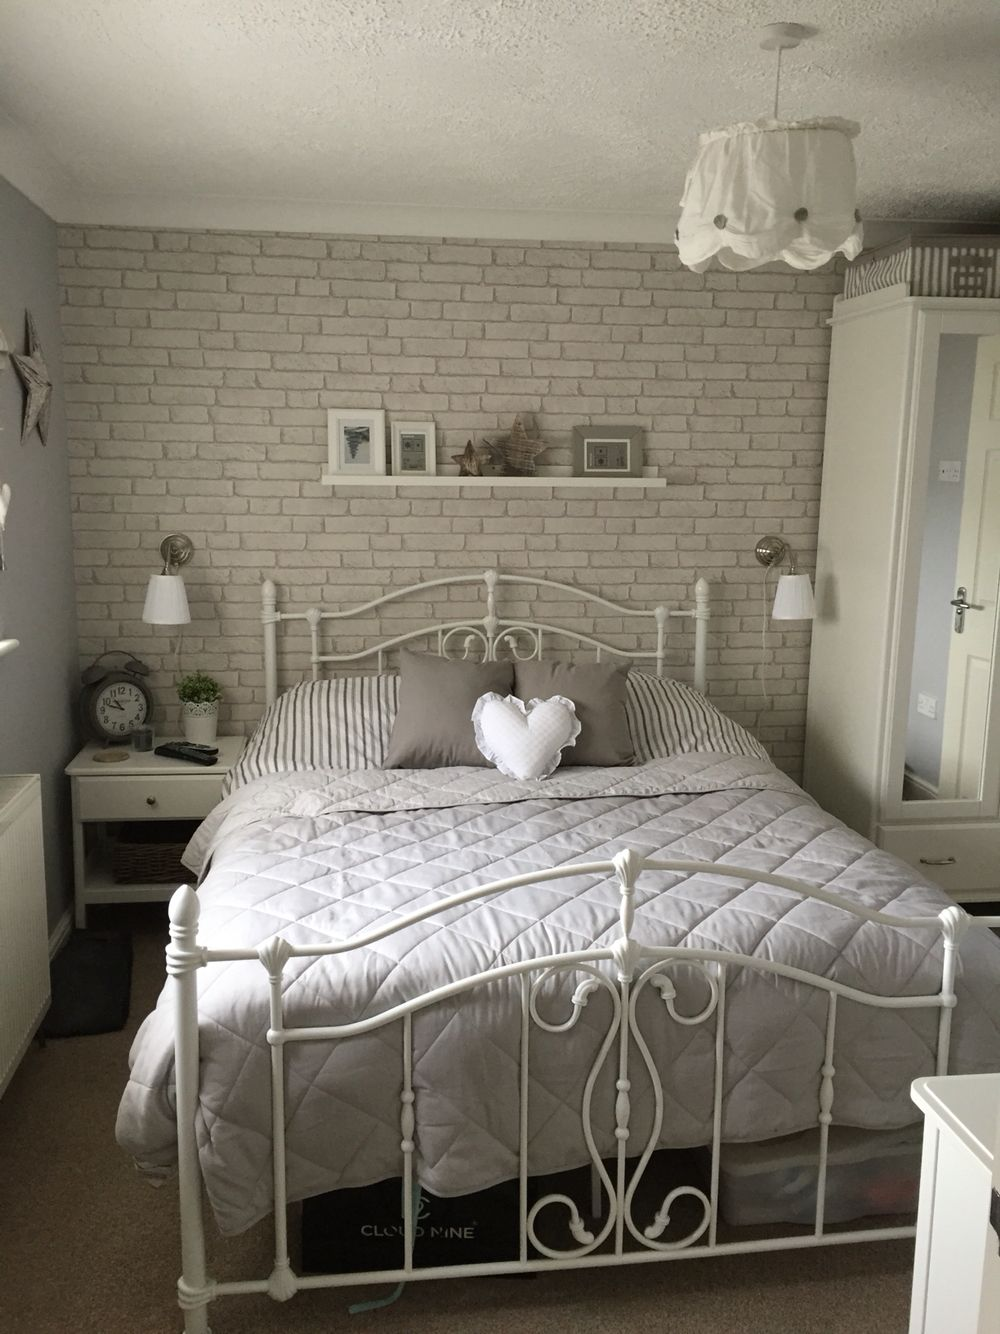 Brick Wallpaper White Brick Wallpaper Bedroom Brick Wallpaper Bedroom Brick Wall Bedroom